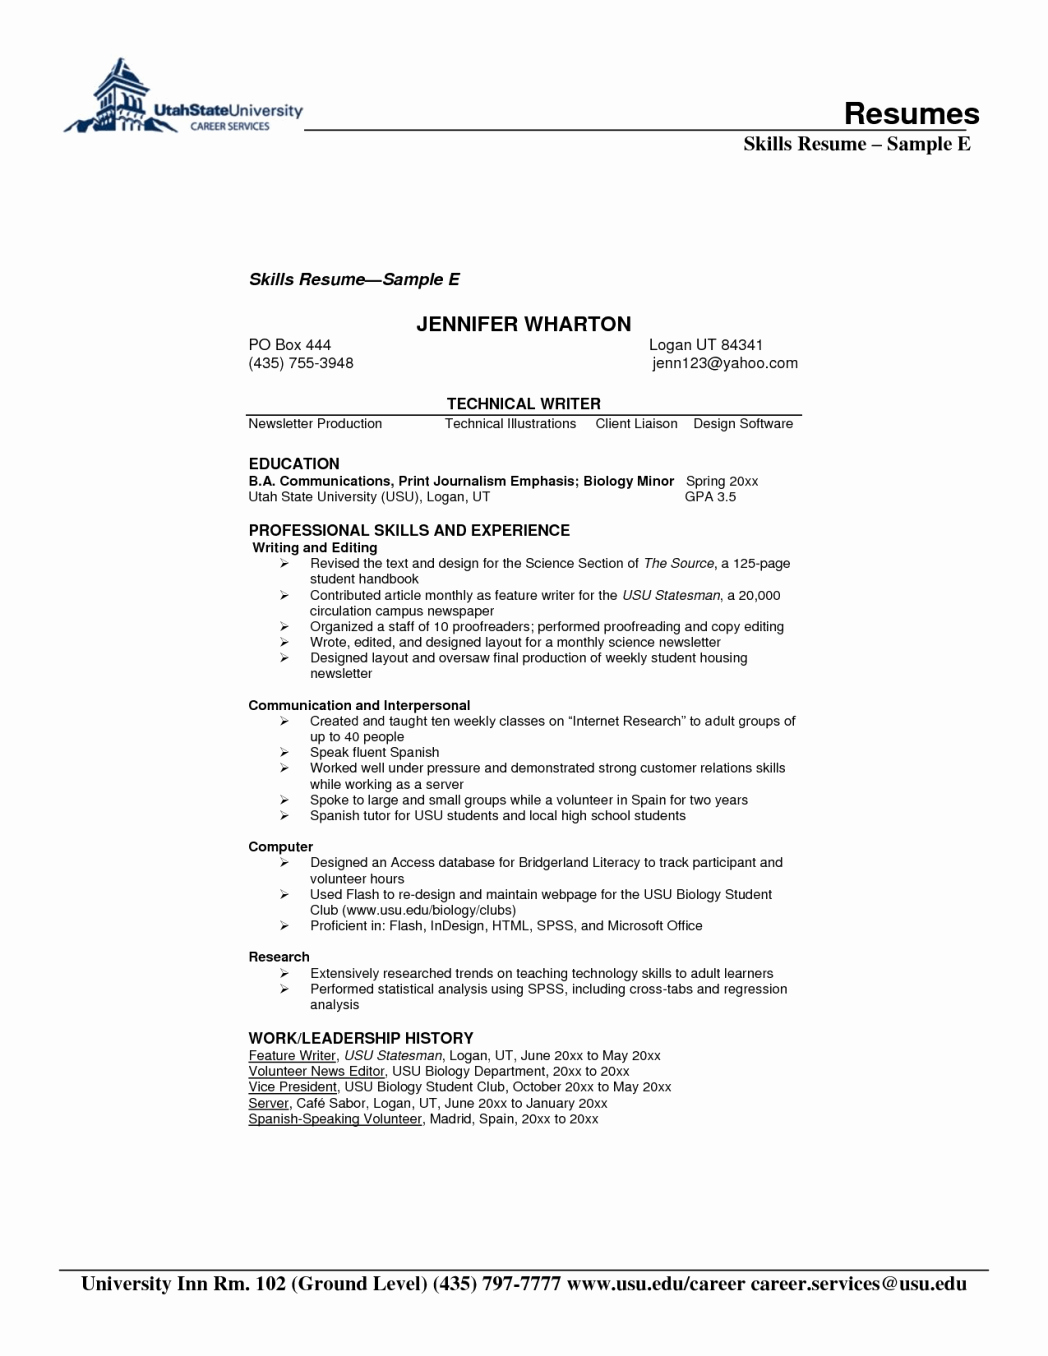 Writing Objectives for Skill Sets – Perfect Resume format